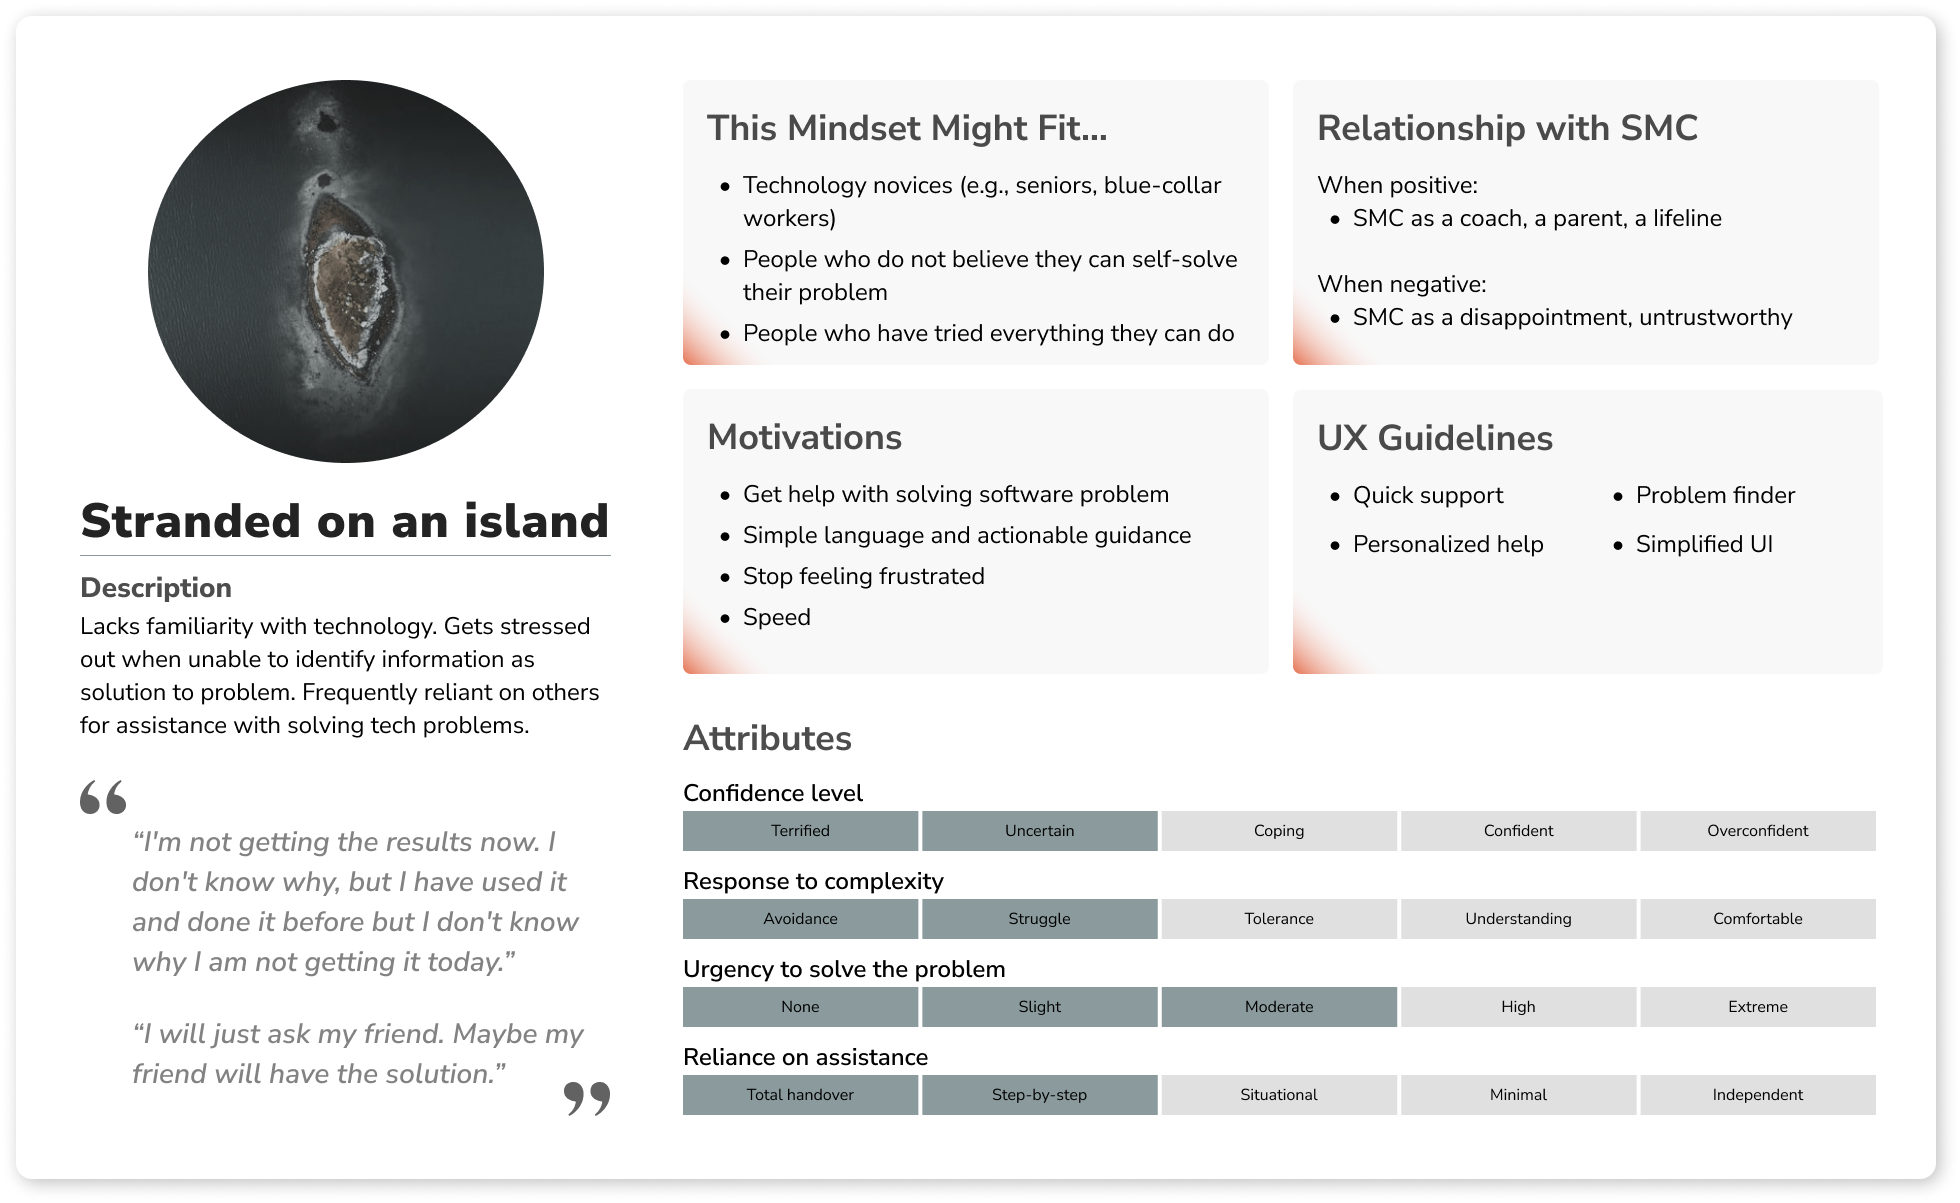 A graphic of the attributes, characteristics, beliefs, motivation, description of the mindset stranded on an island.